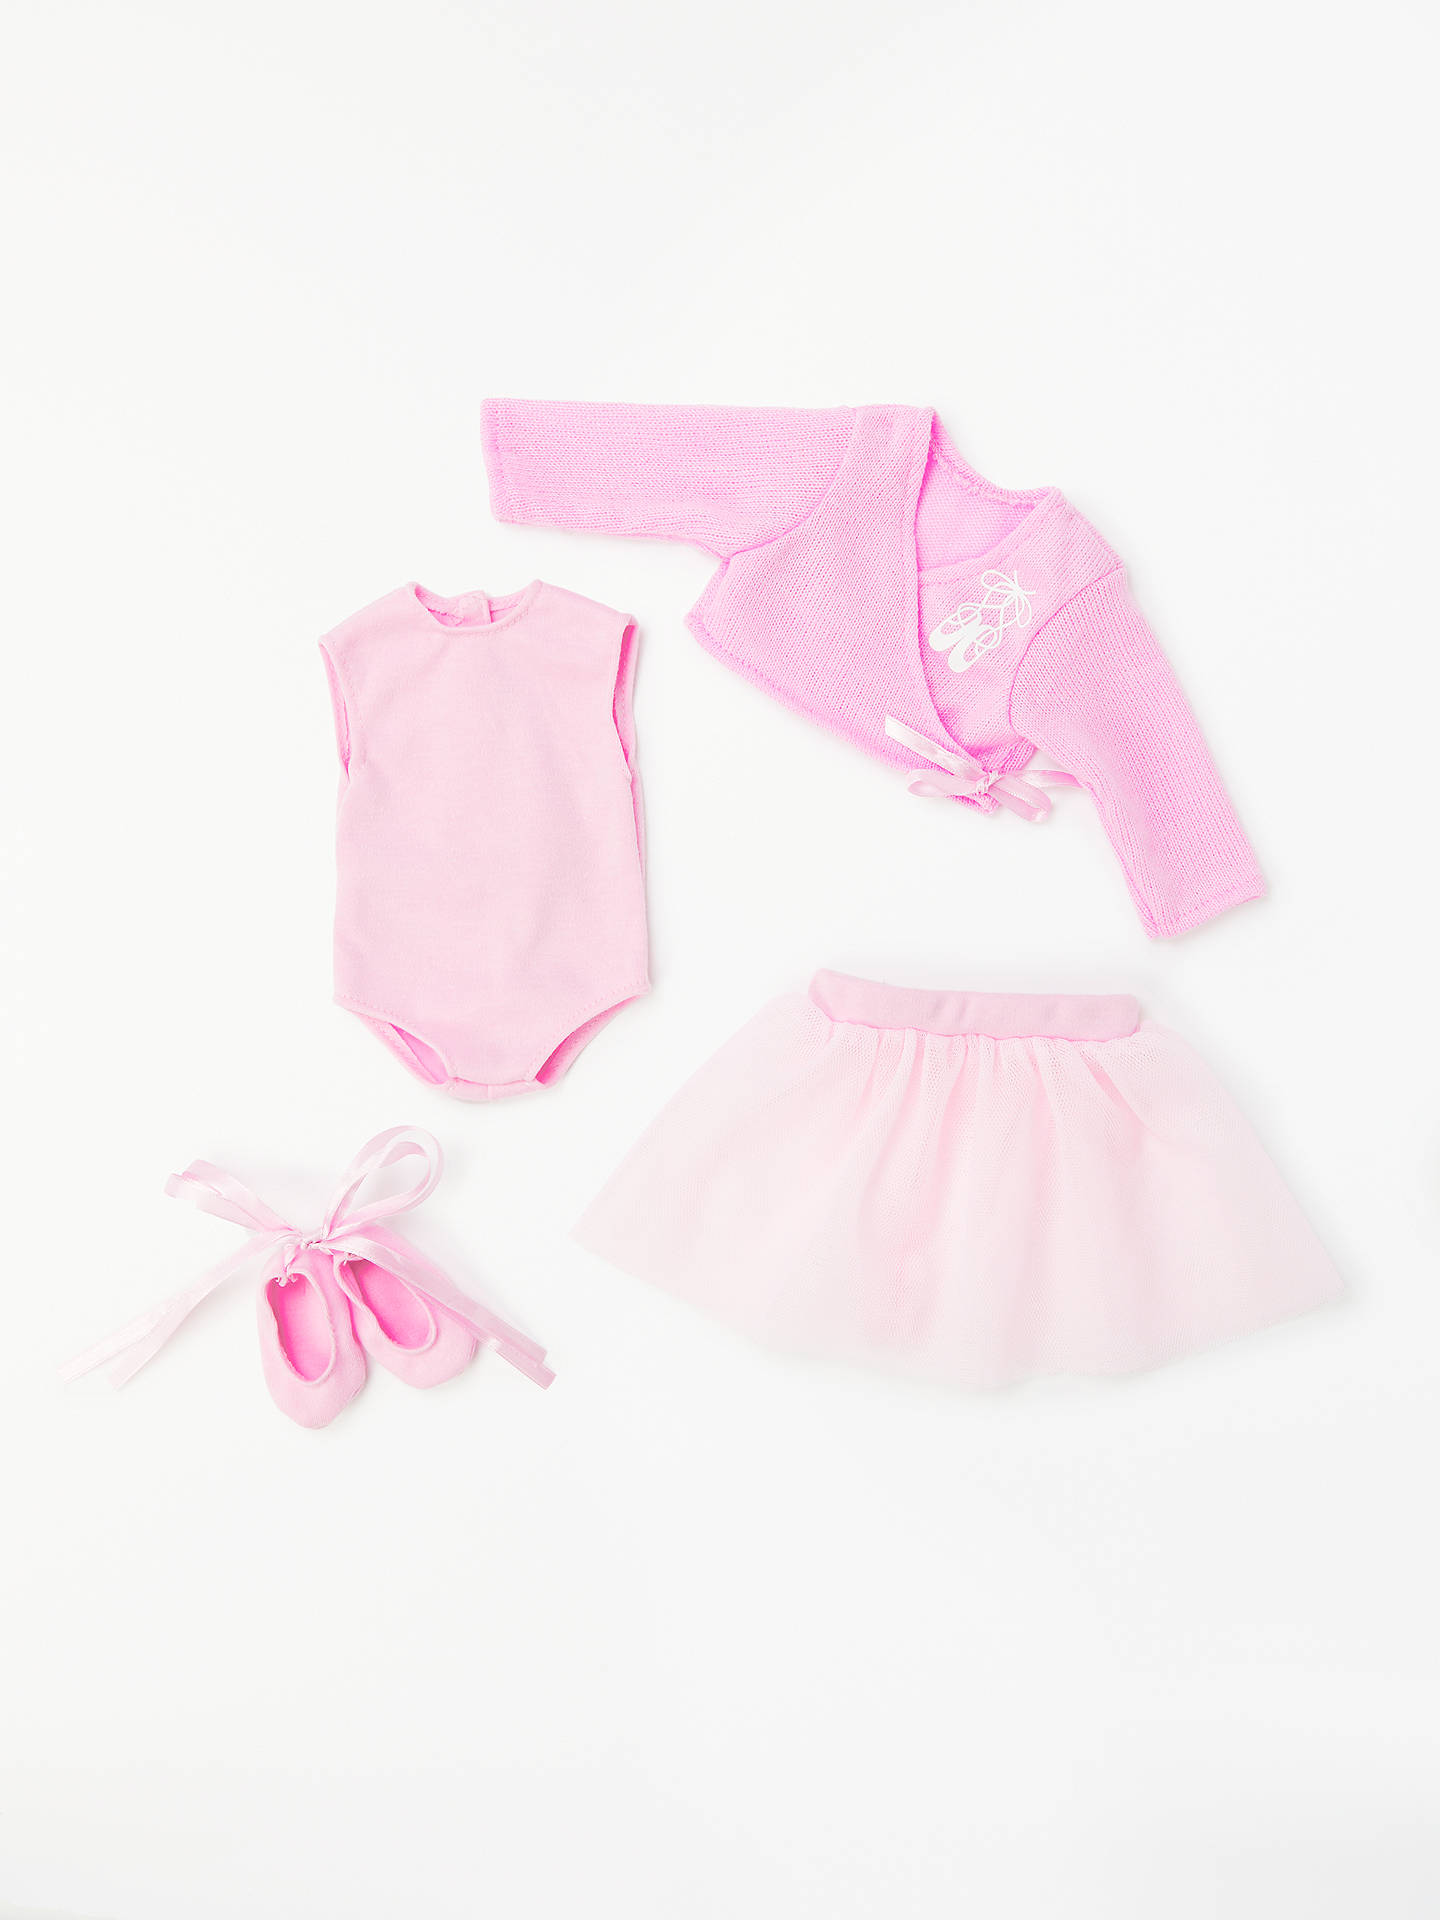 BuyJohn Lewis & Partners Collector's Doll Ballet Outfit Online at johnlewis.com